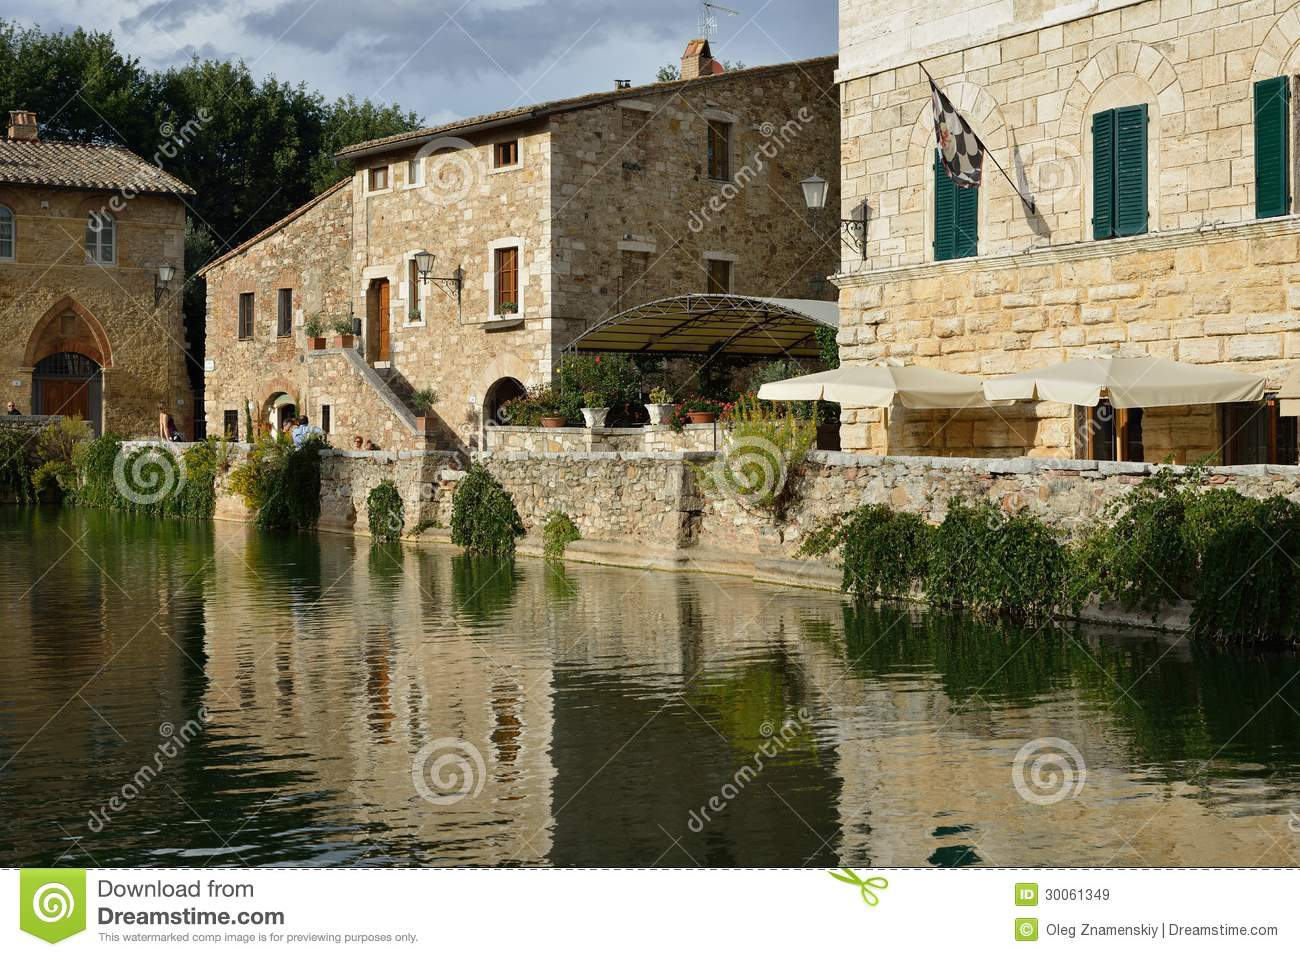 Old Thermal Baths In Bagno Vignoni Editorial Stock Image - Image: 30061349